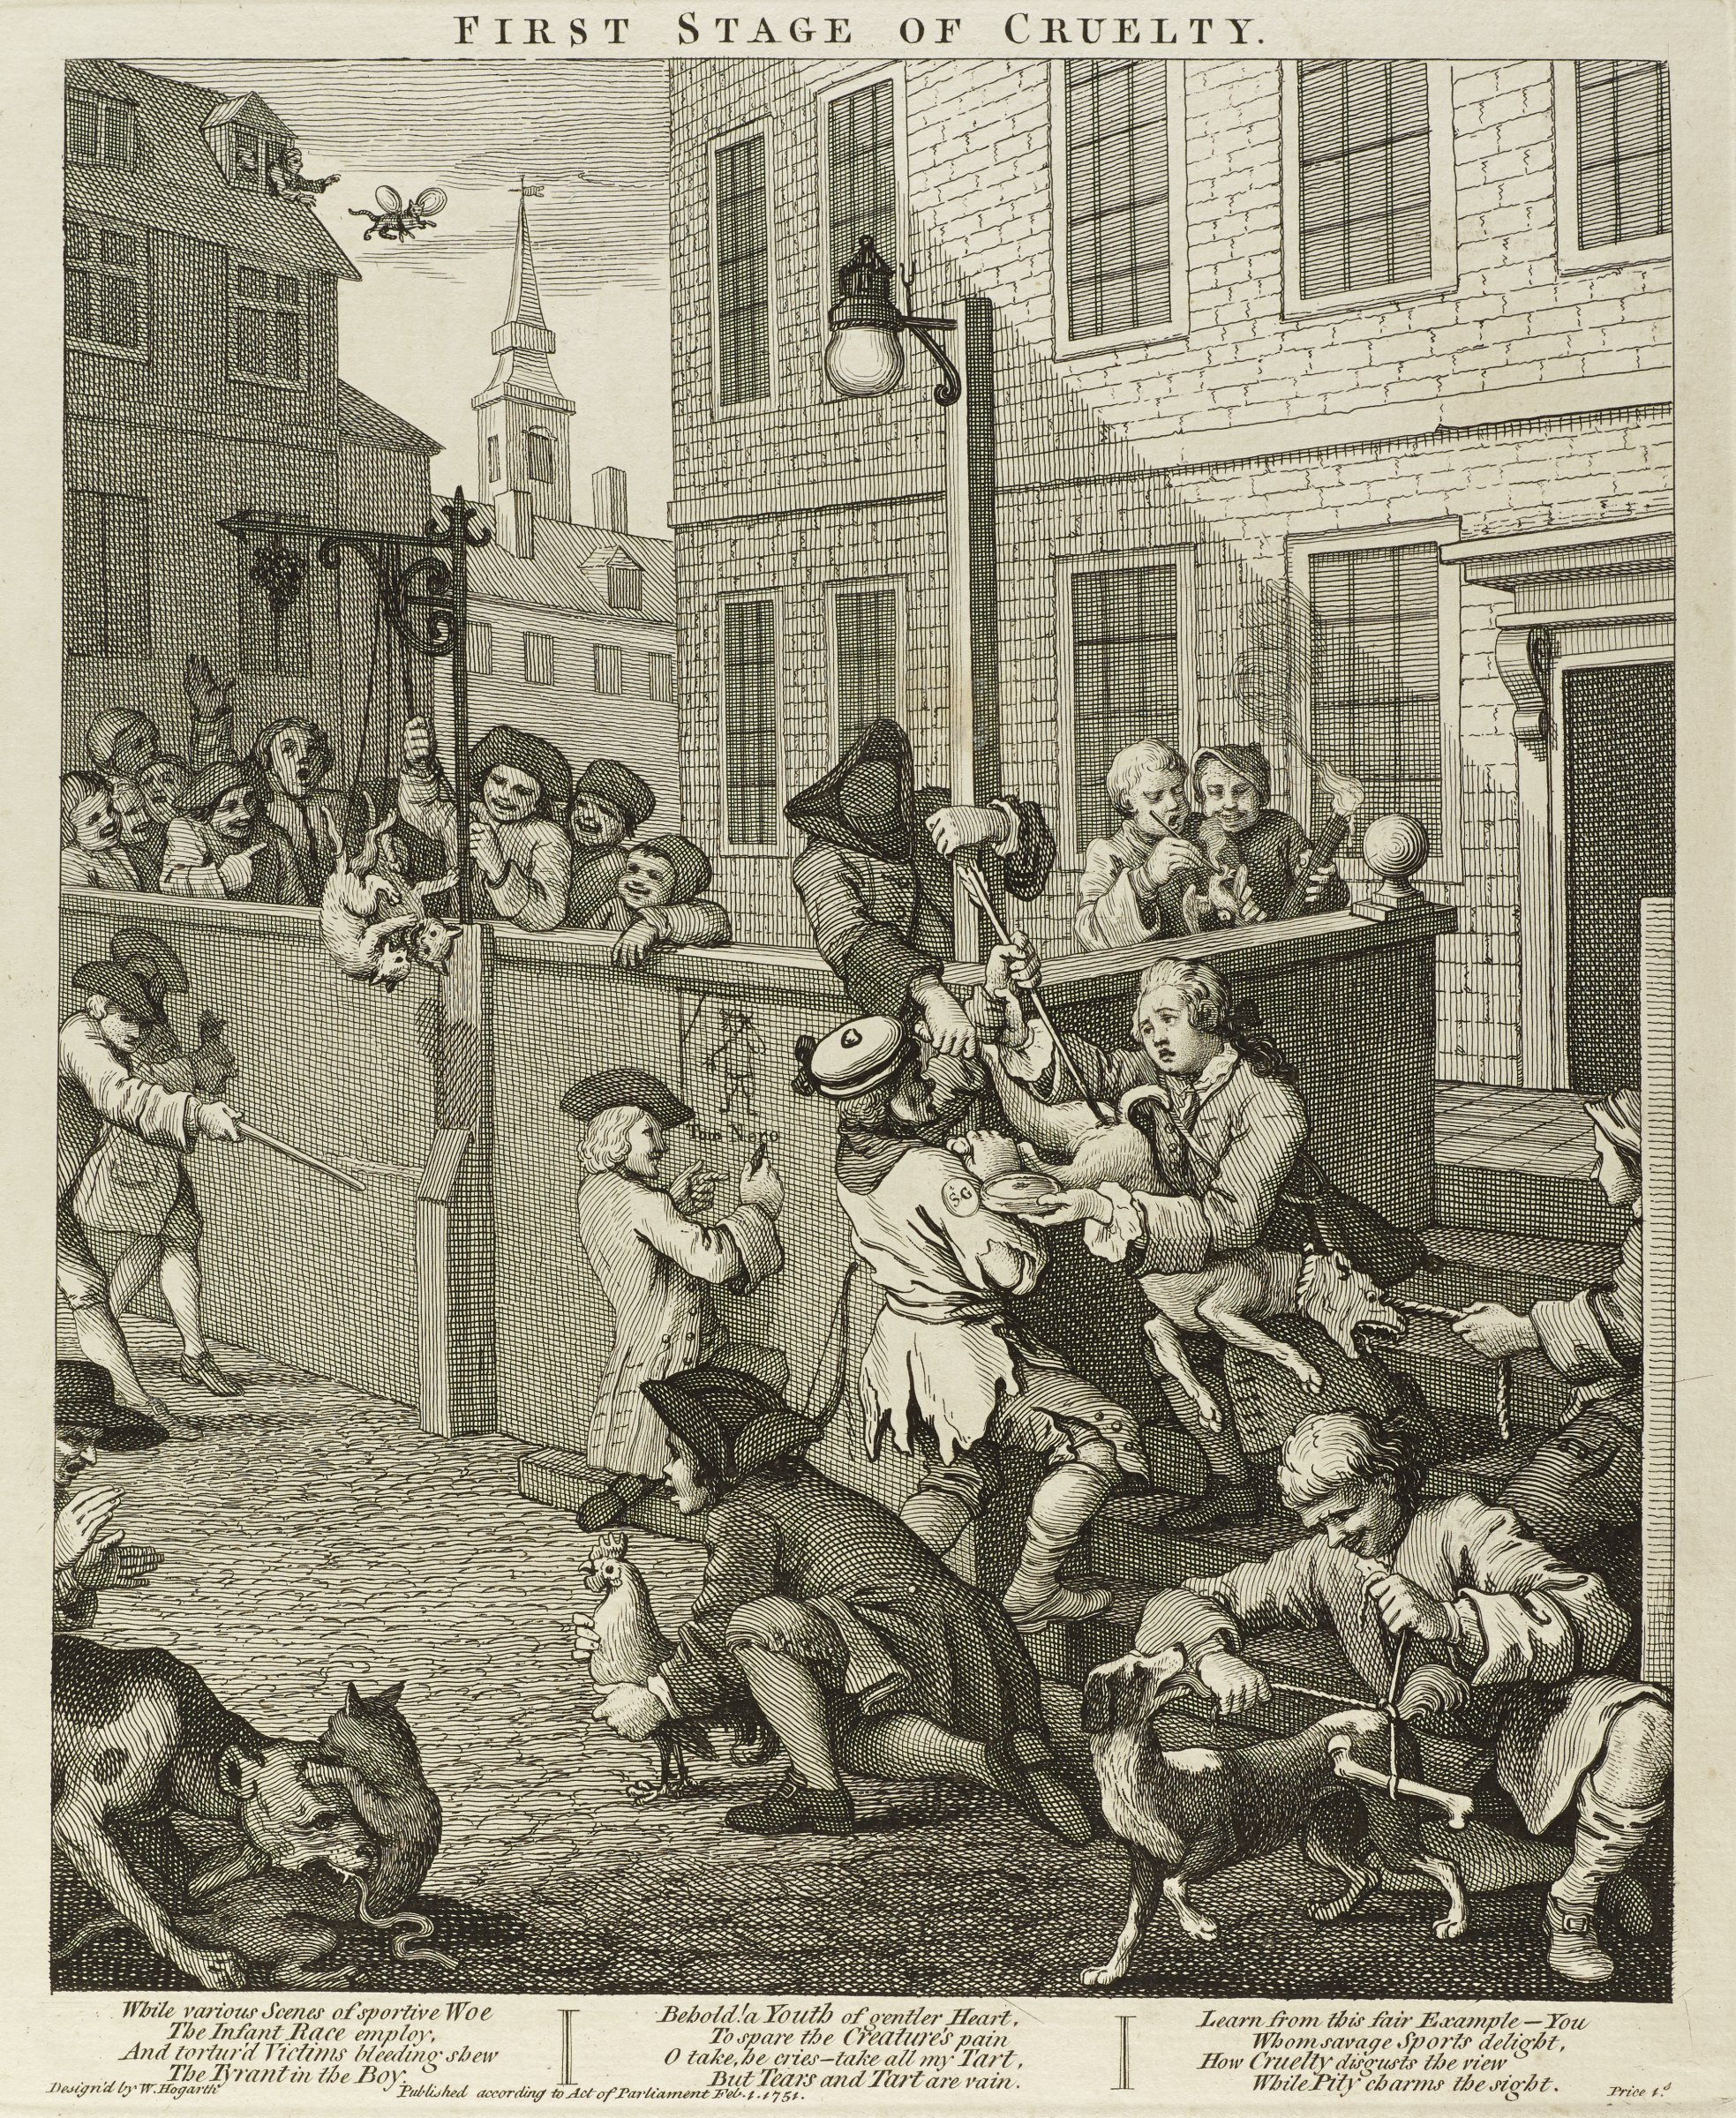 A scene on a street where men are doing various cruel act to cats, dogs, and chickens. Hogarth published this set to alert his contemporaries about the cruel treatment that animals had to endure in eighteenth century England.